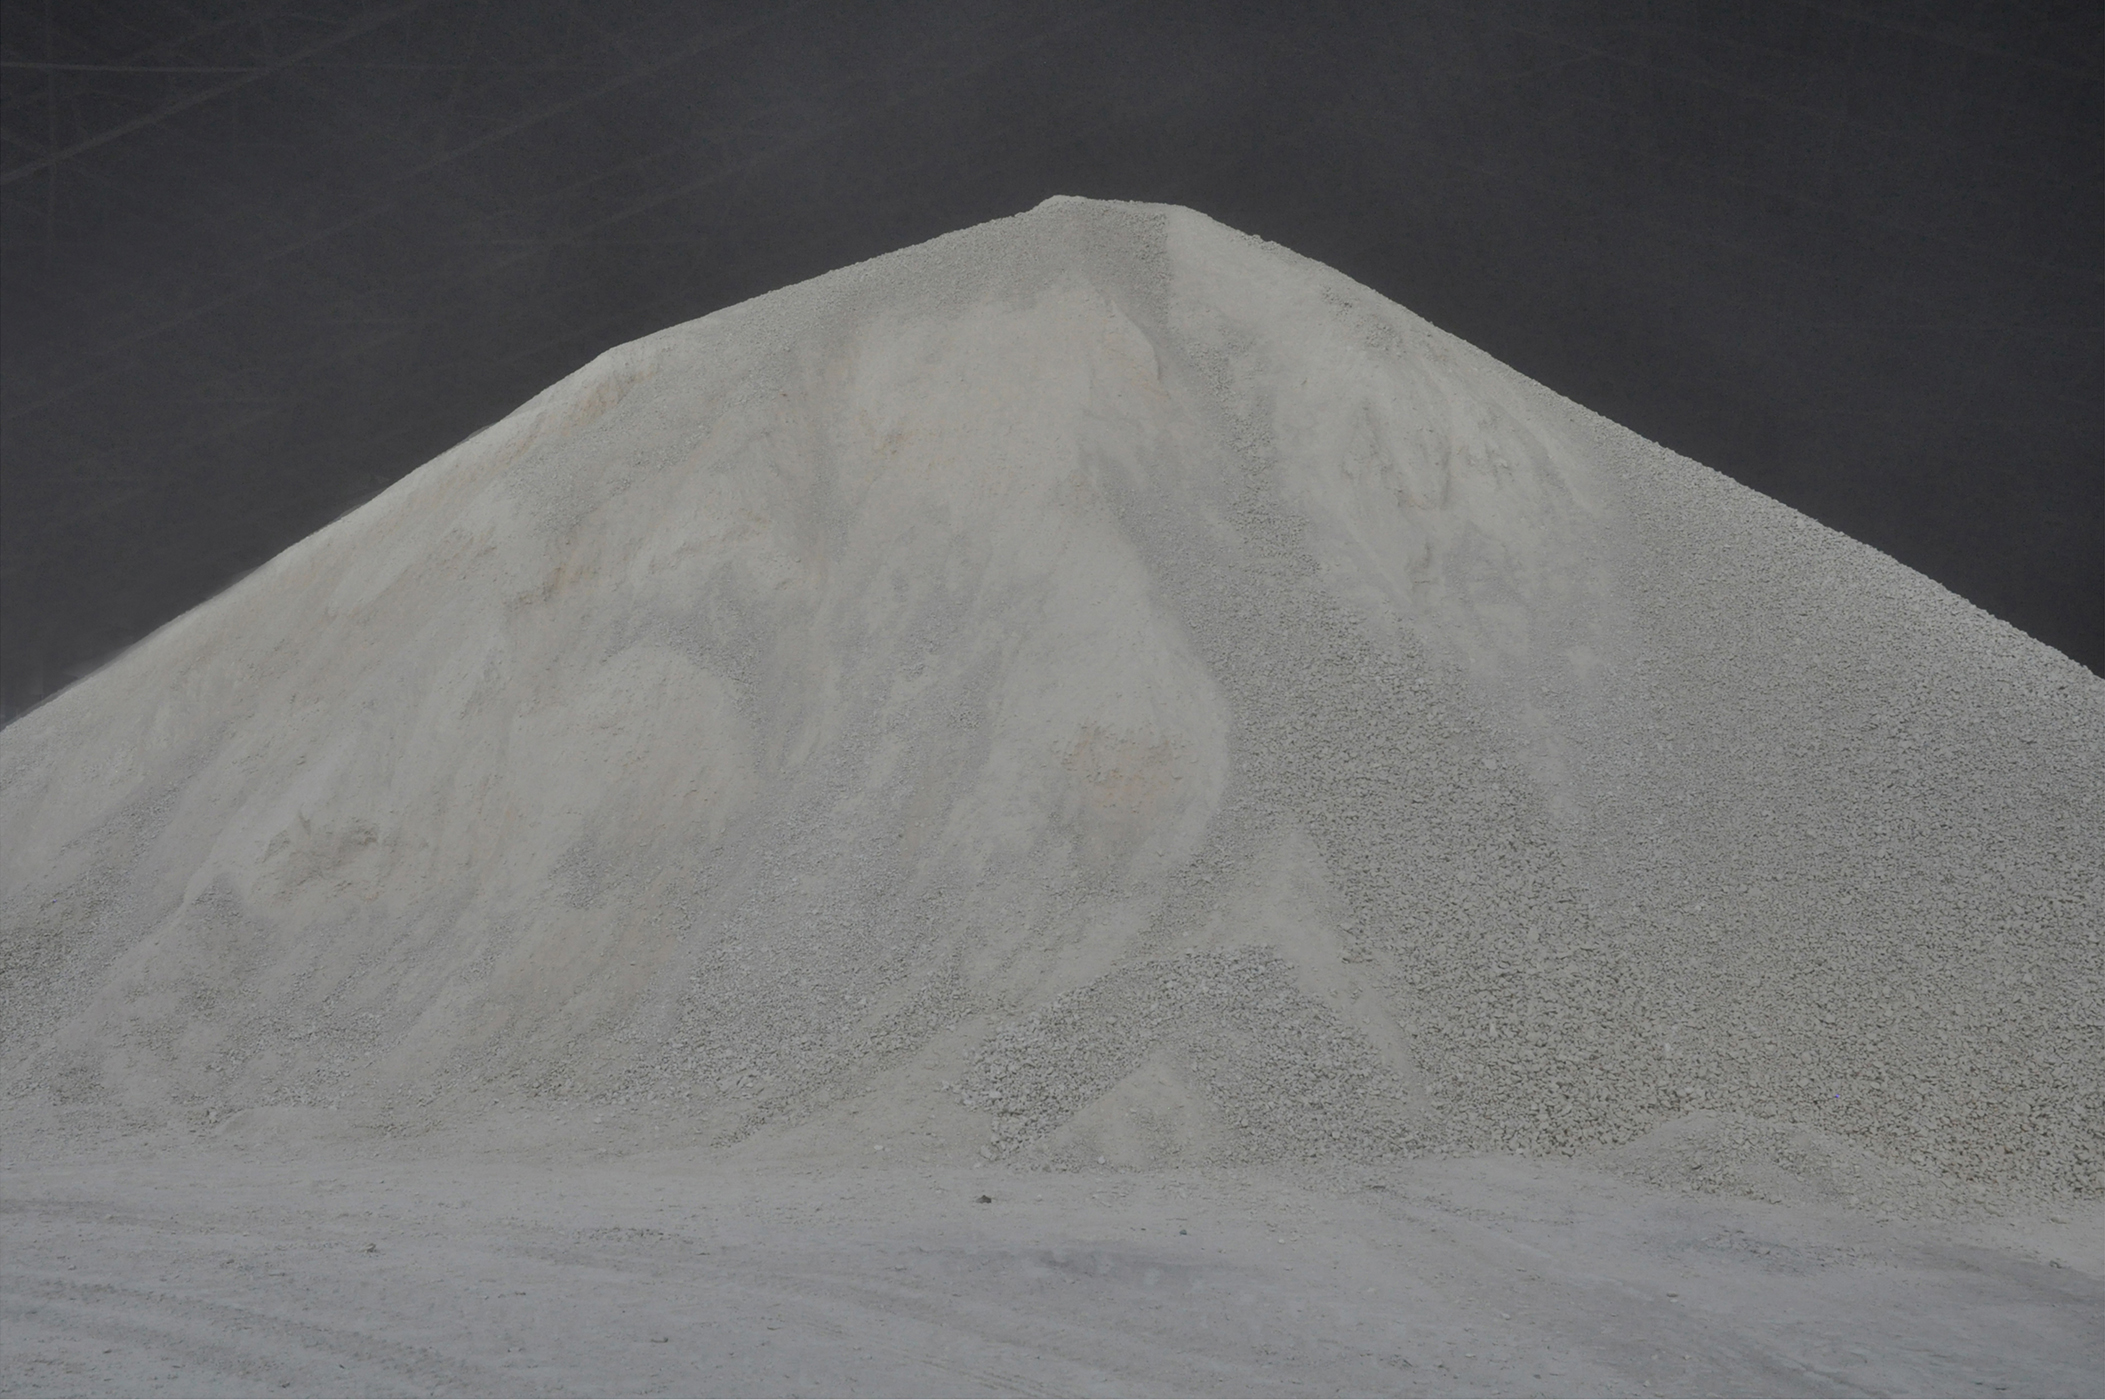 large mound of white gravel and sand